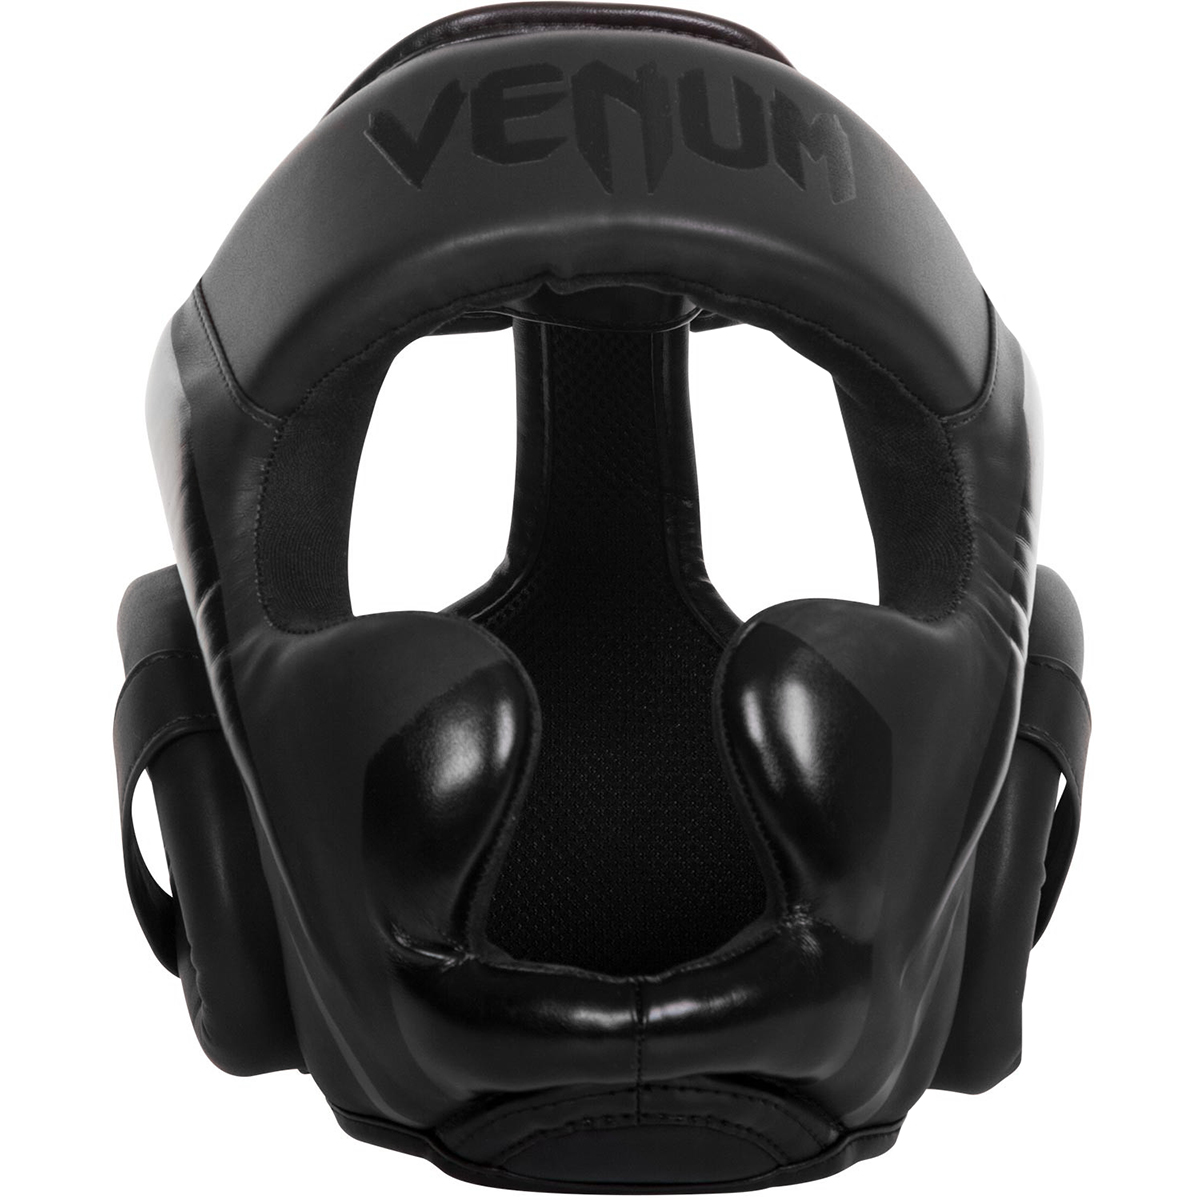 Venum-Elite-Boxing-Headgear thumbnail 2